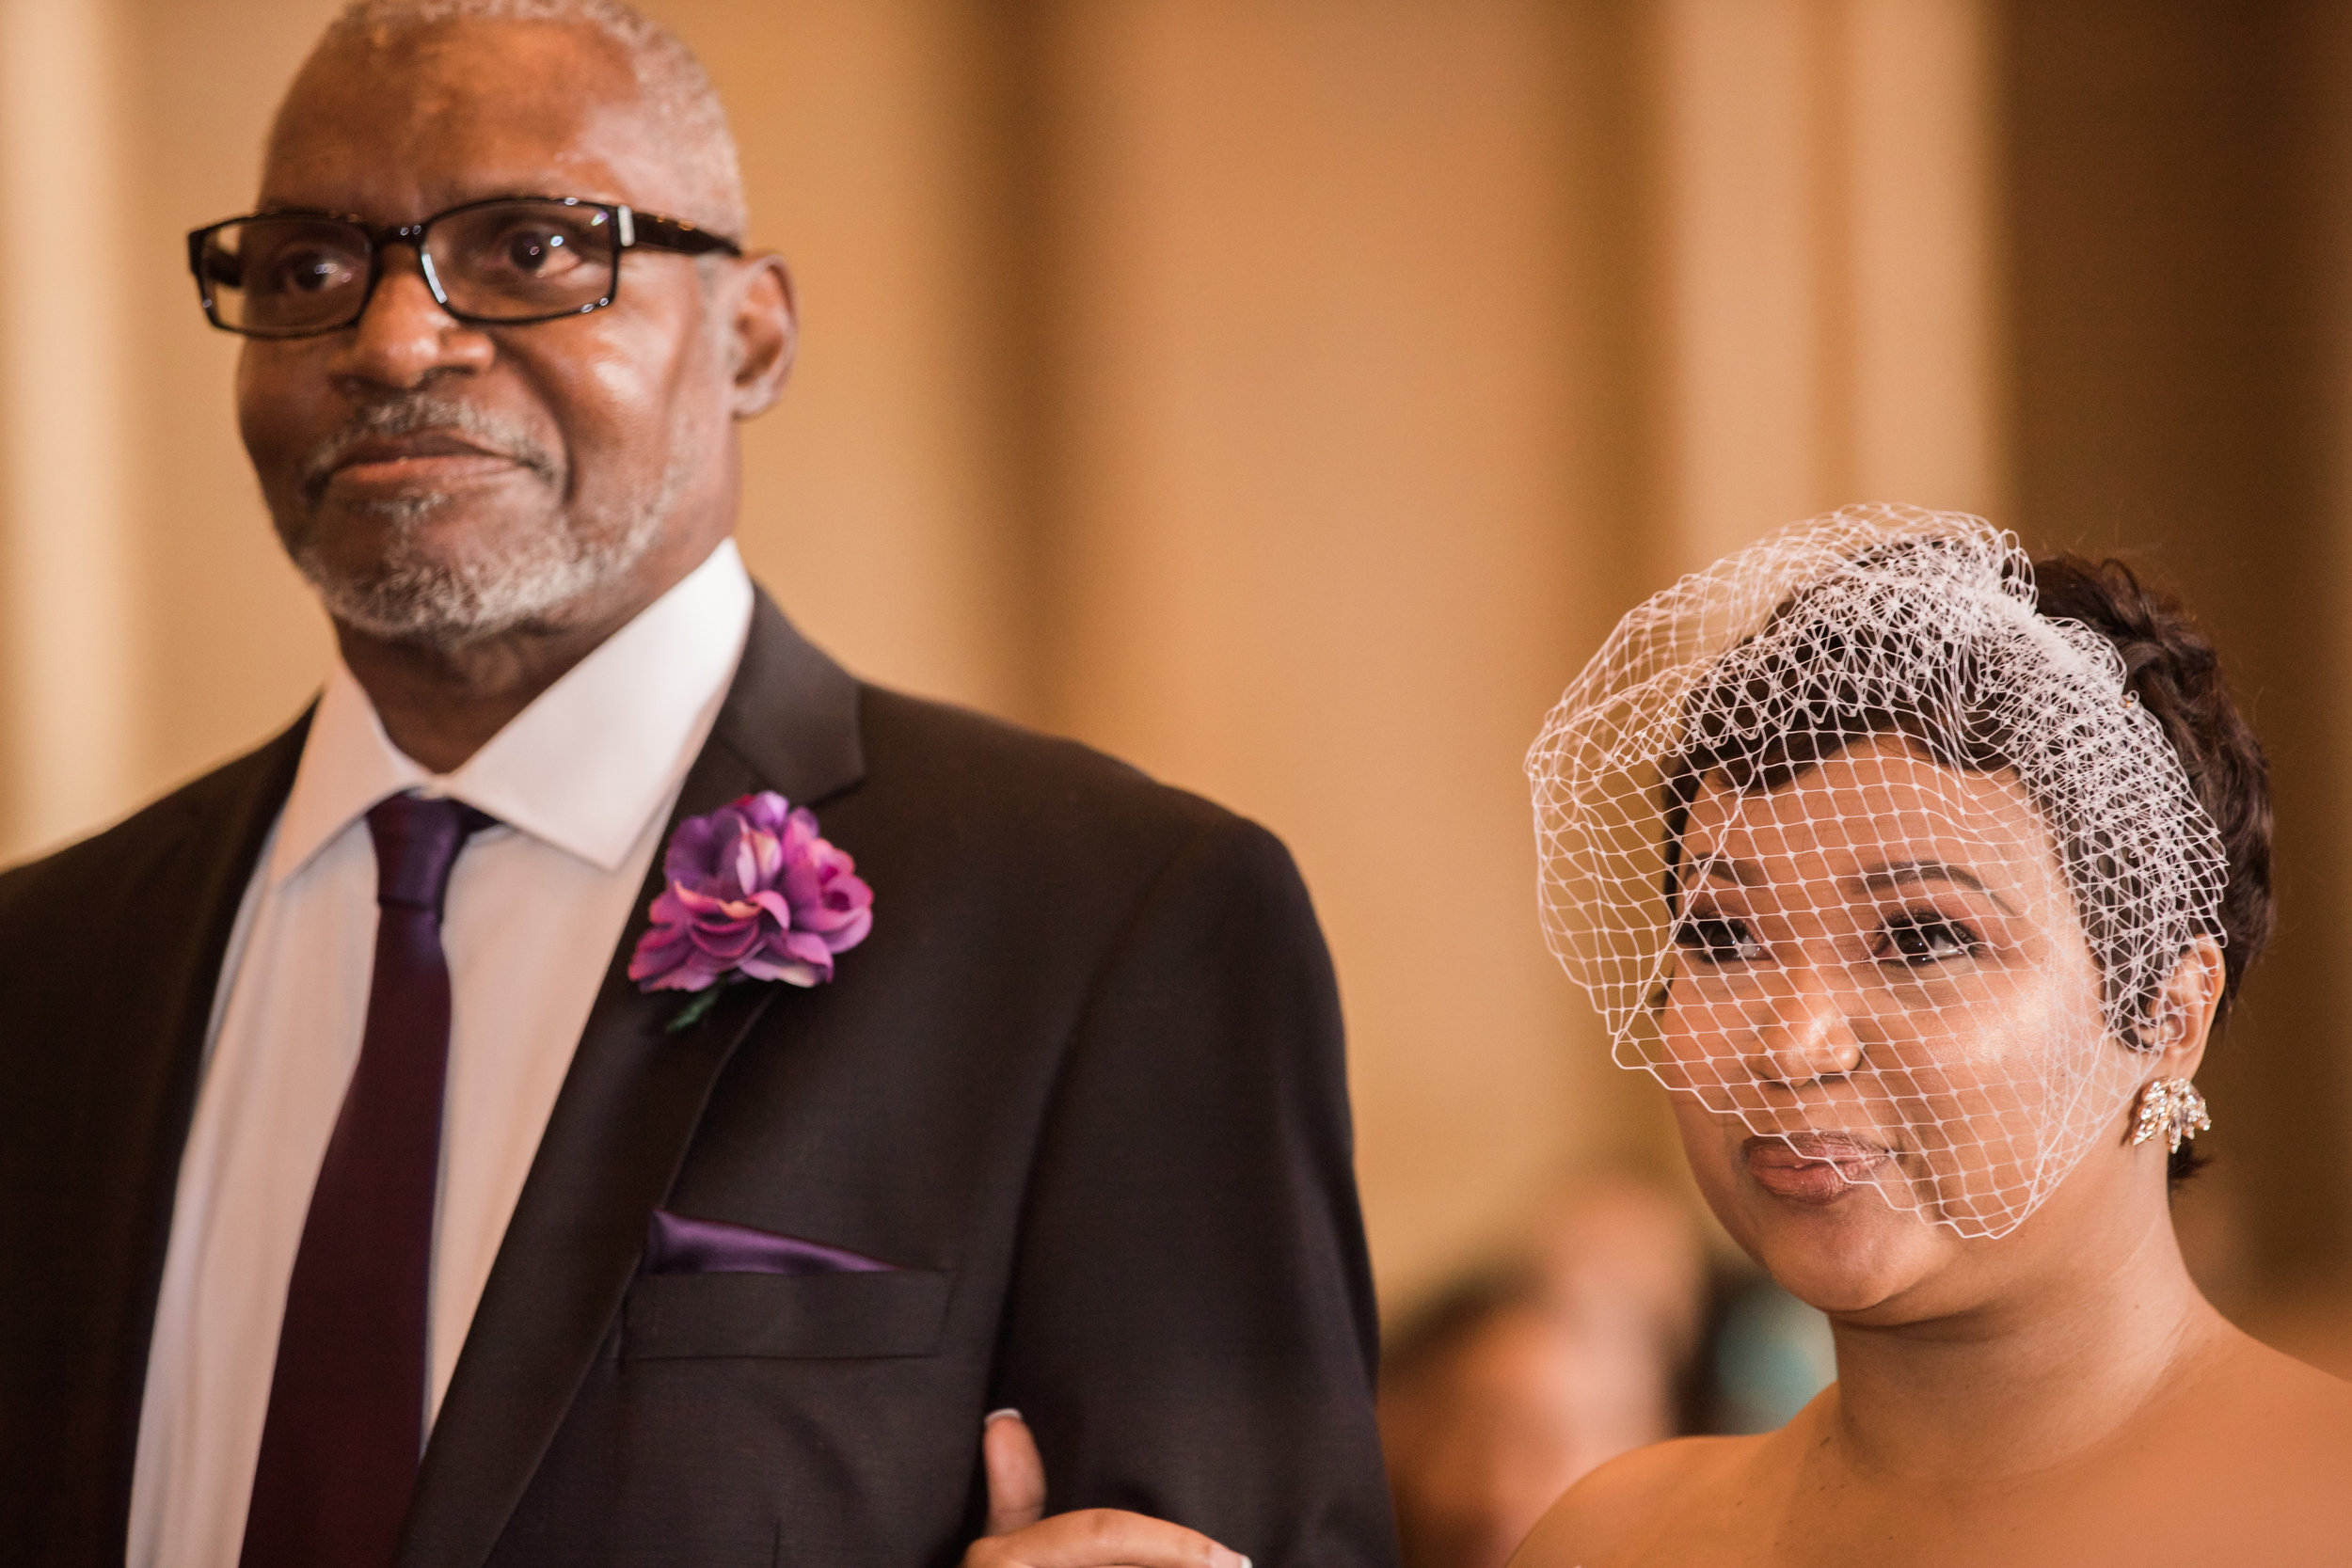 Best Classic Black Bride at The Grand Baltimore Maryland Husband and Wife Wedding Photographers Megapixels Media (44 of 98).jpg